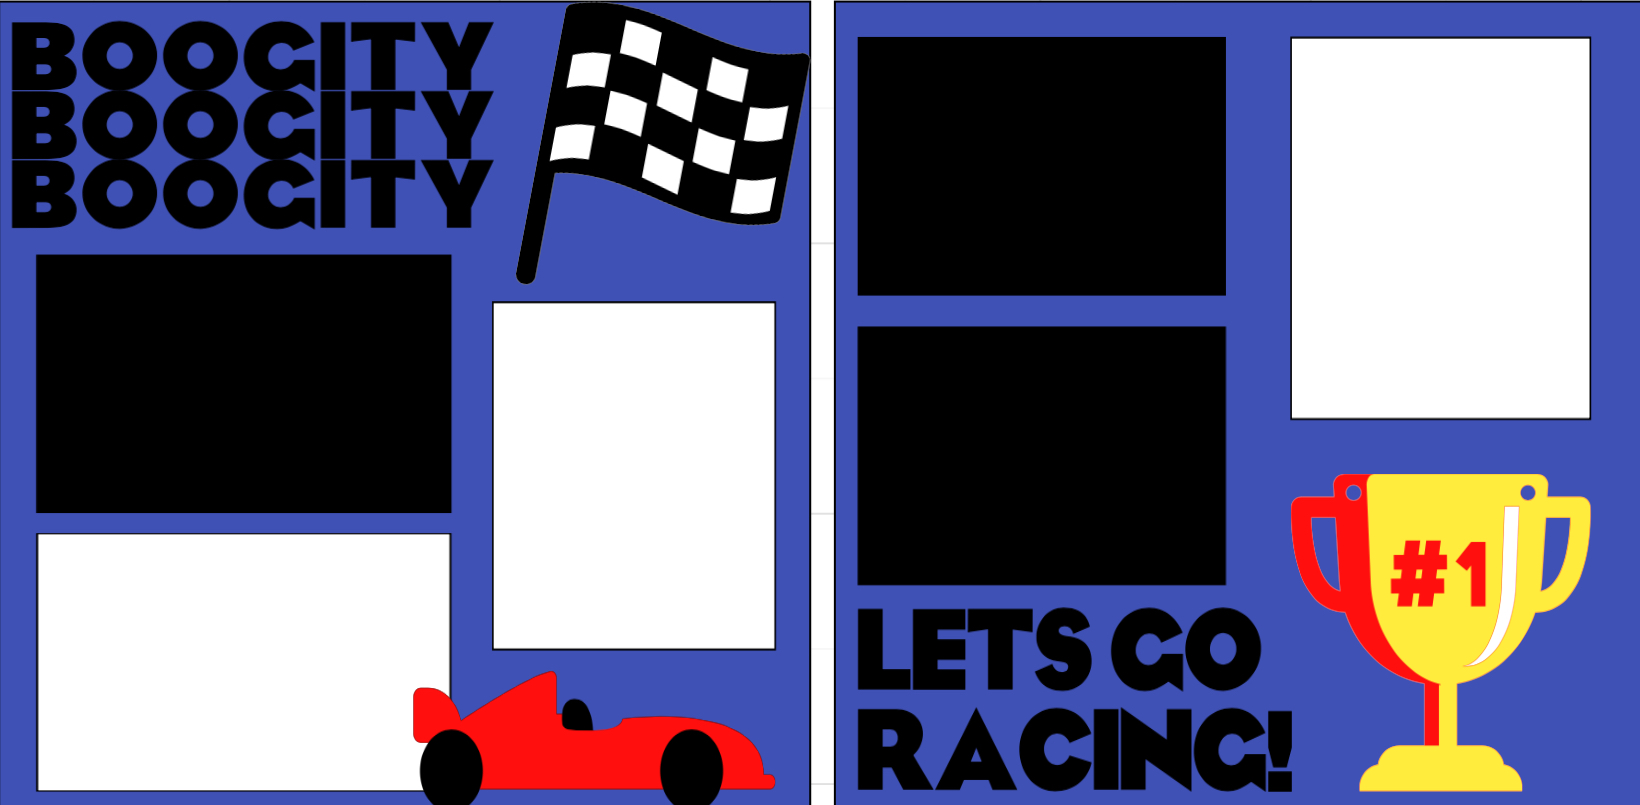 Let's go racing -  page kit